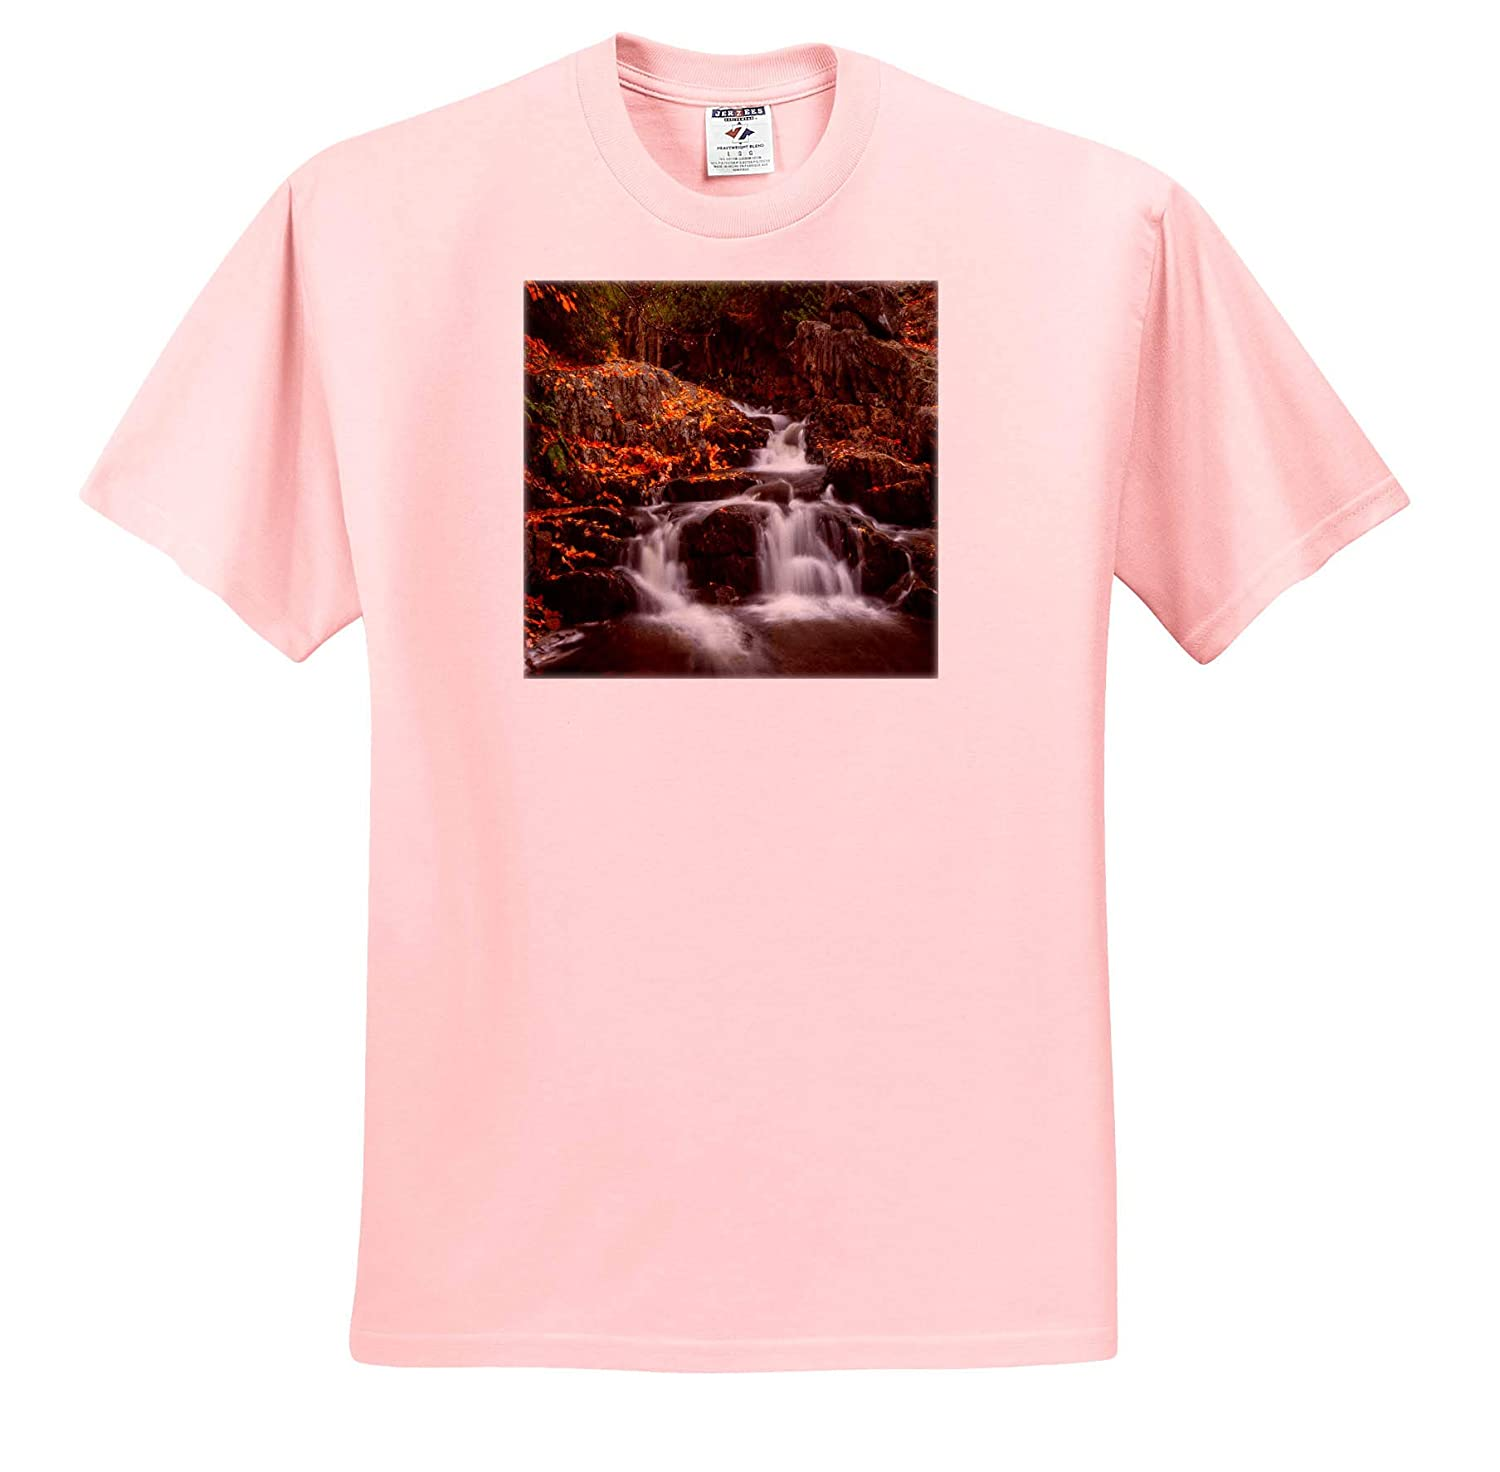 Autumn Leaves on Rocks ts/_317150 3dRose Mike Swindle Photography Landscapes Adult T-Shirt XL